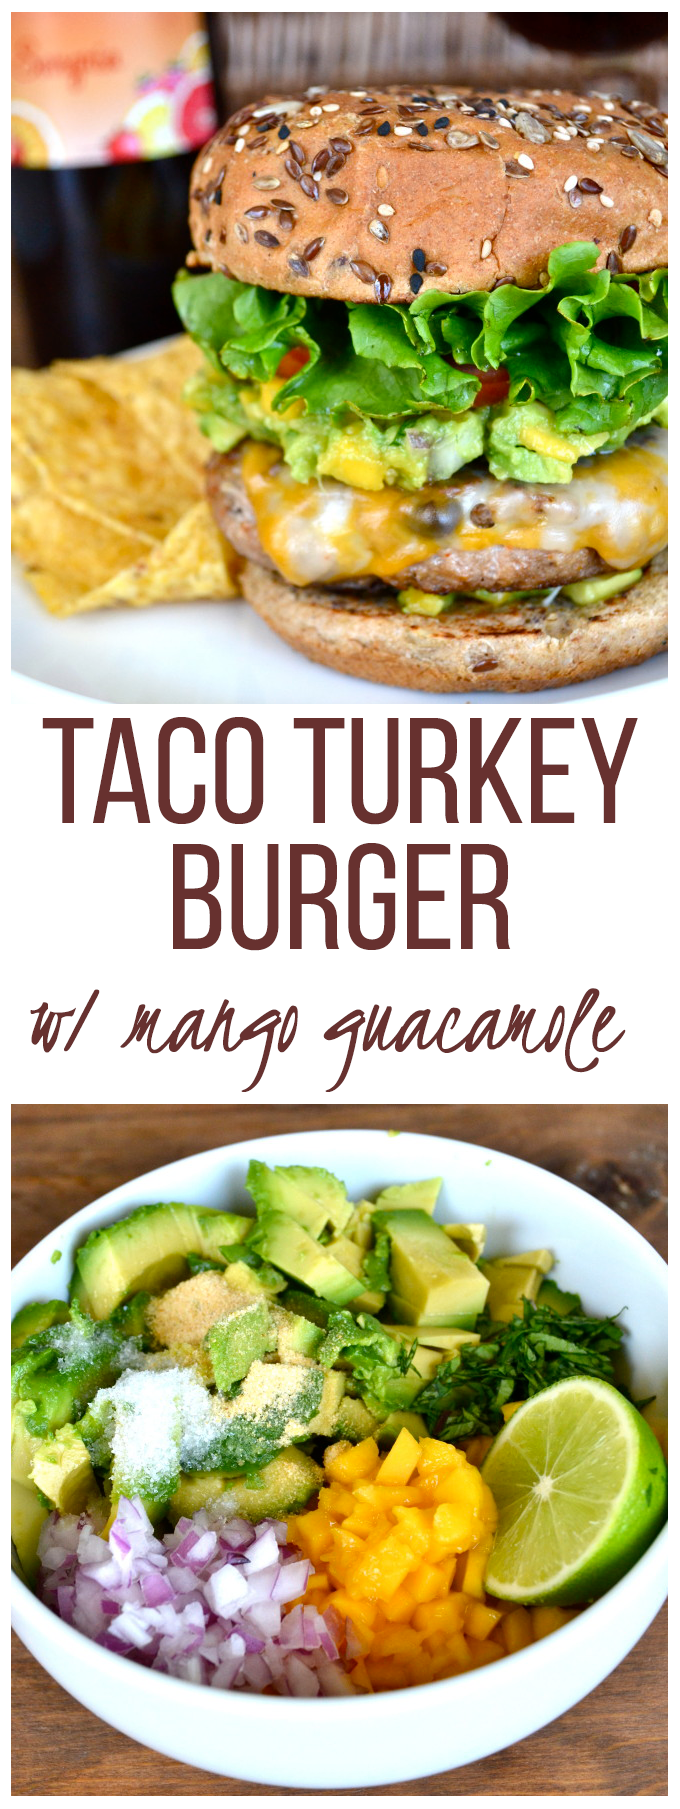 Taco Turkey Burger with Mango Guacamole - Little Bits of...